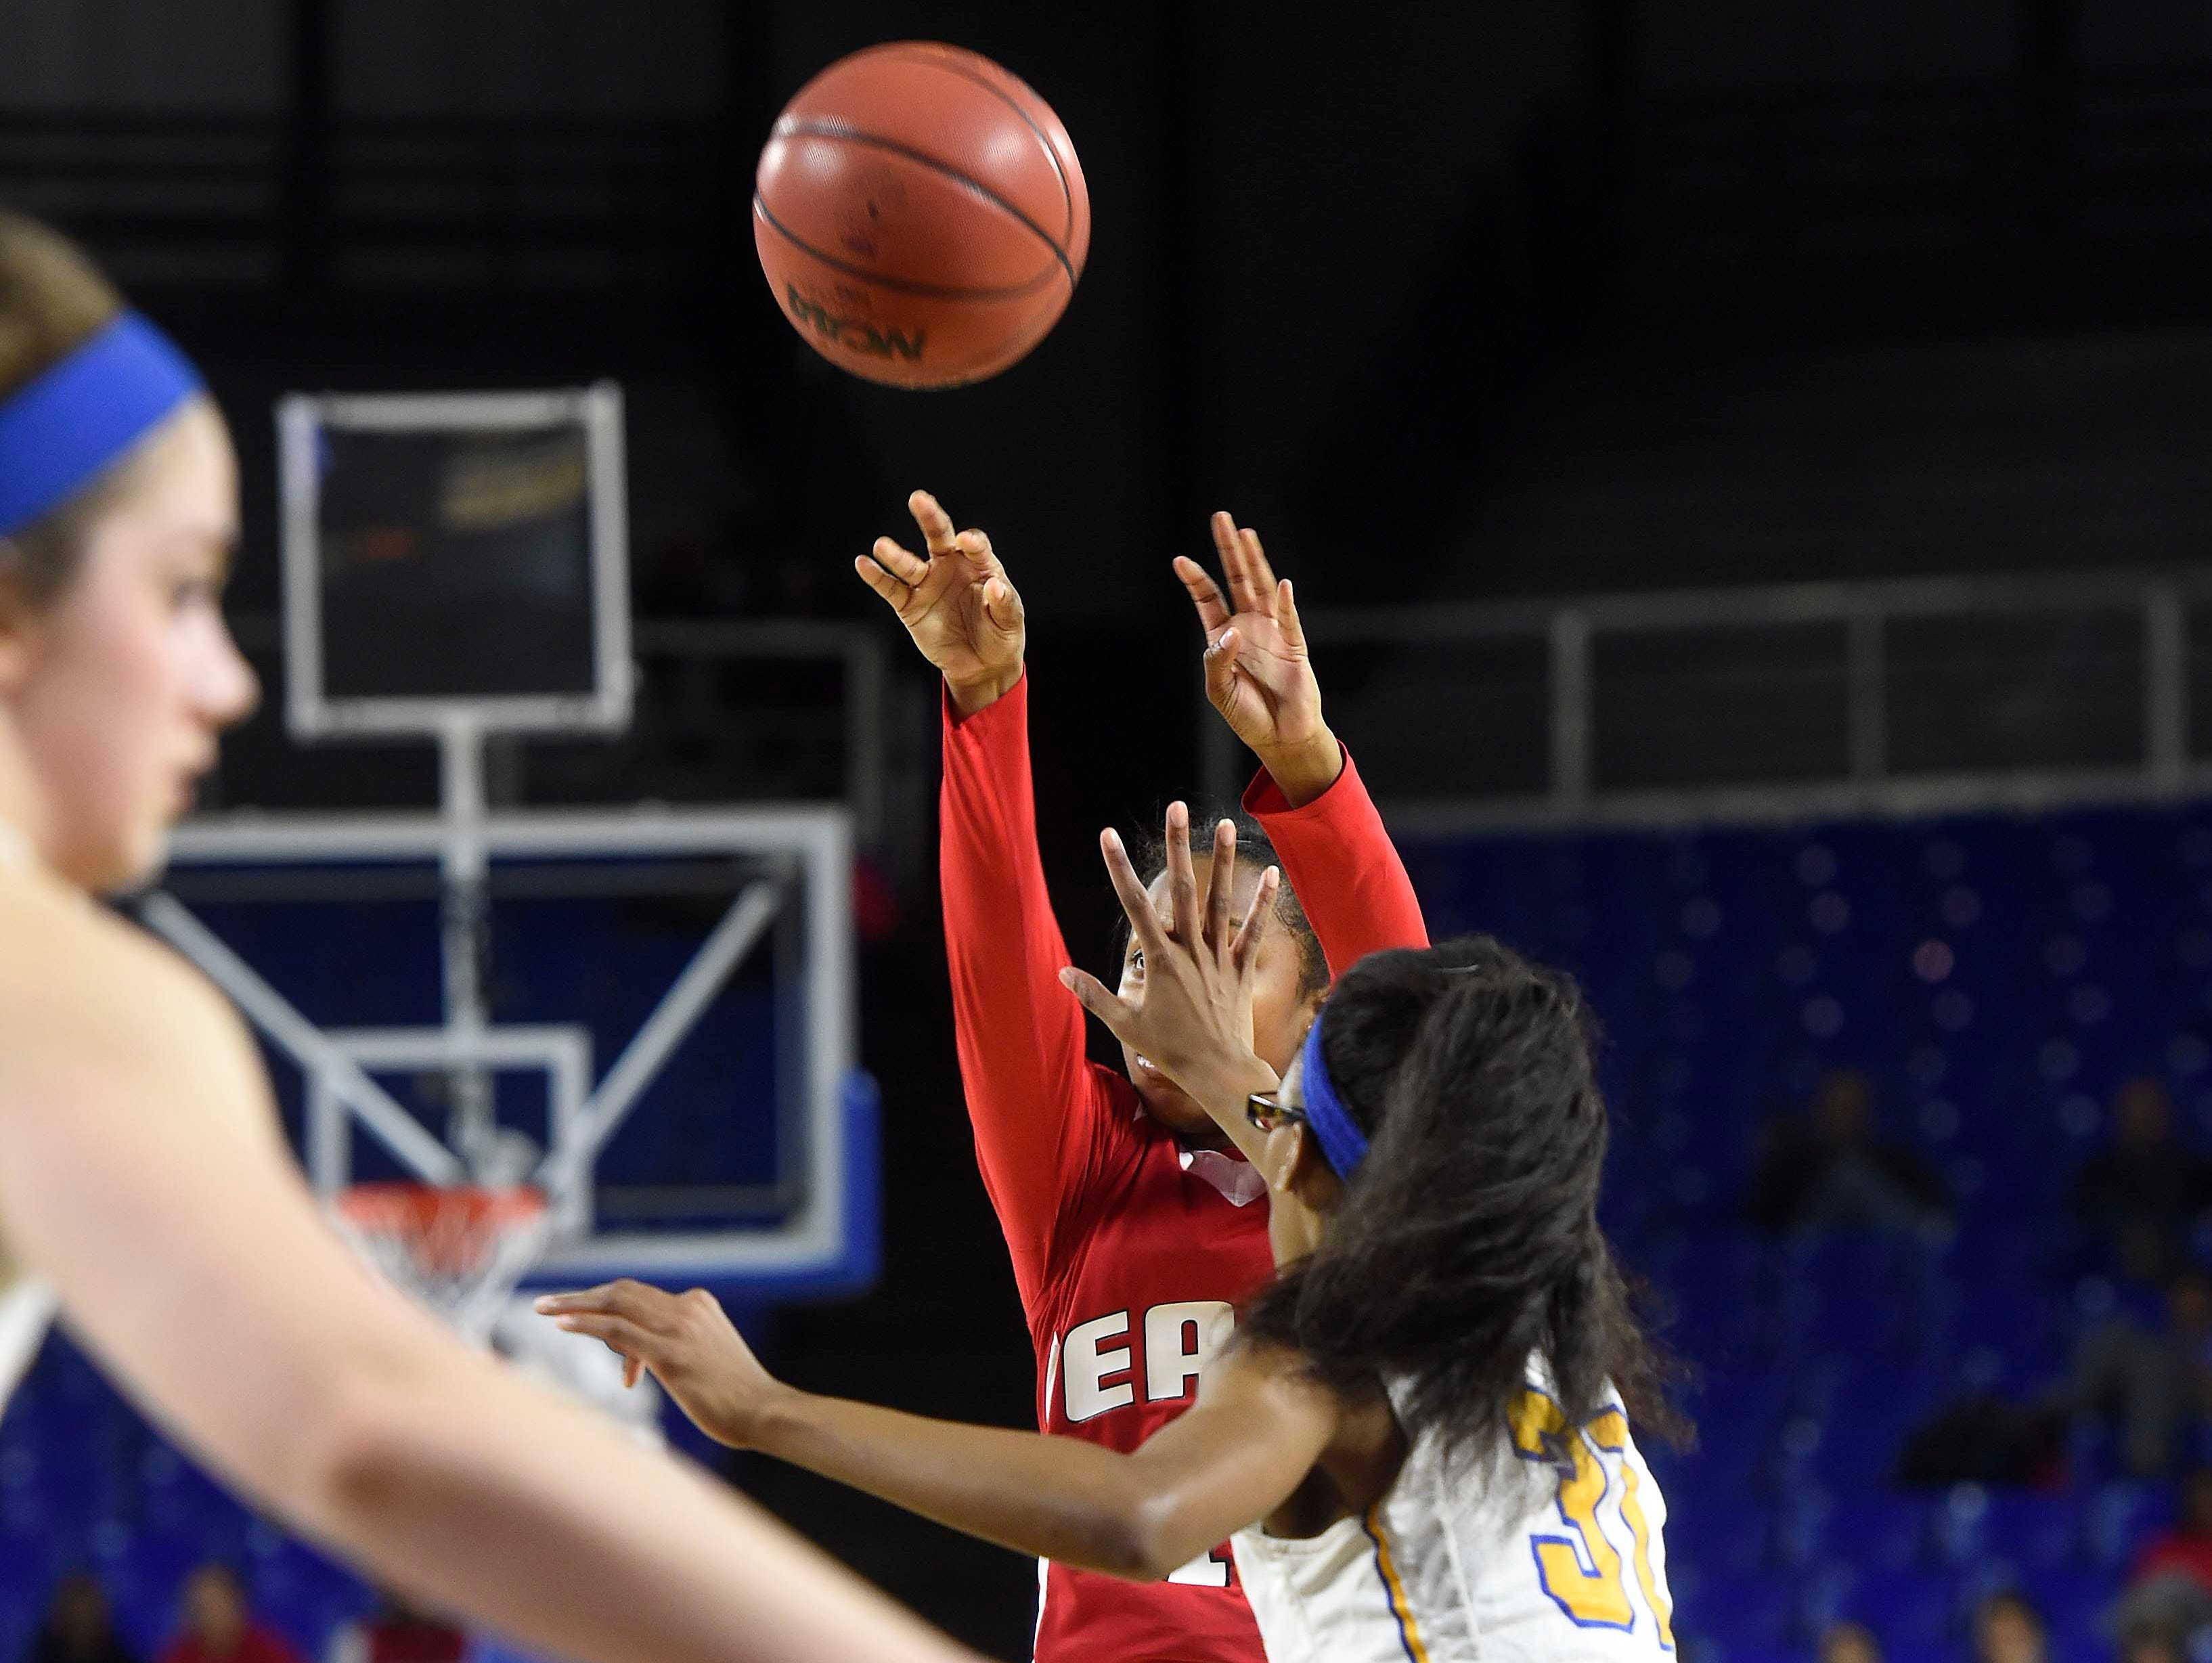 East's Le'Jzae Davidson (10) shoots for two with a hand in her face from Westview's Alexis Beam (32) as Westview High School leads 17-13 East Nashville at the half in the Division I Class AA Girl's basketball semi-finals at the Murphy Center on MTSU's campus March 11, 2016 in Murfreesboro, Tenn.